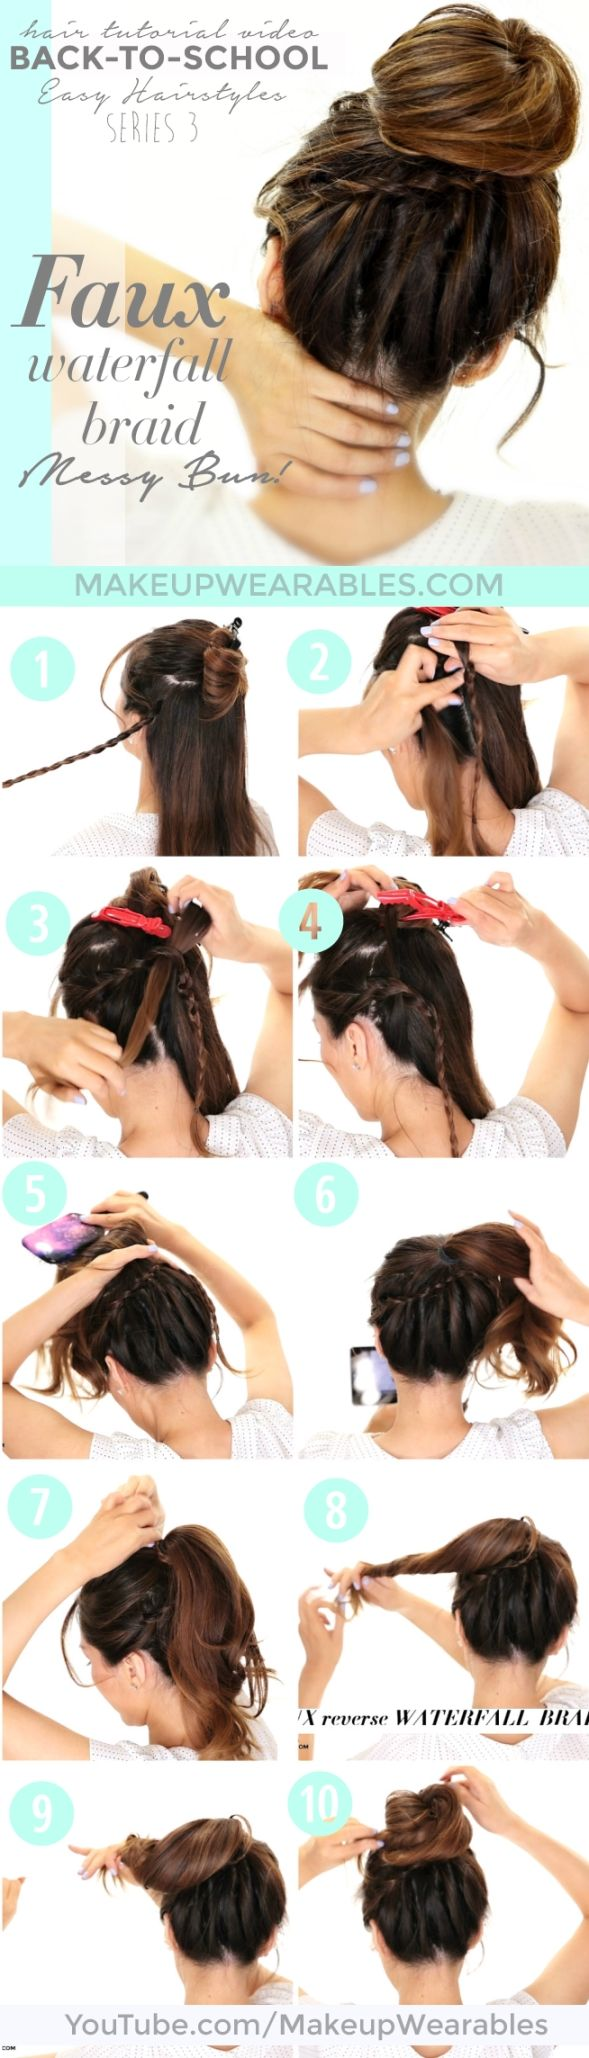 Super 1000 Images About Hairstyles On Pinterest Easy Hairstyles Short Hairstyles For Black Women Fulllsitofus